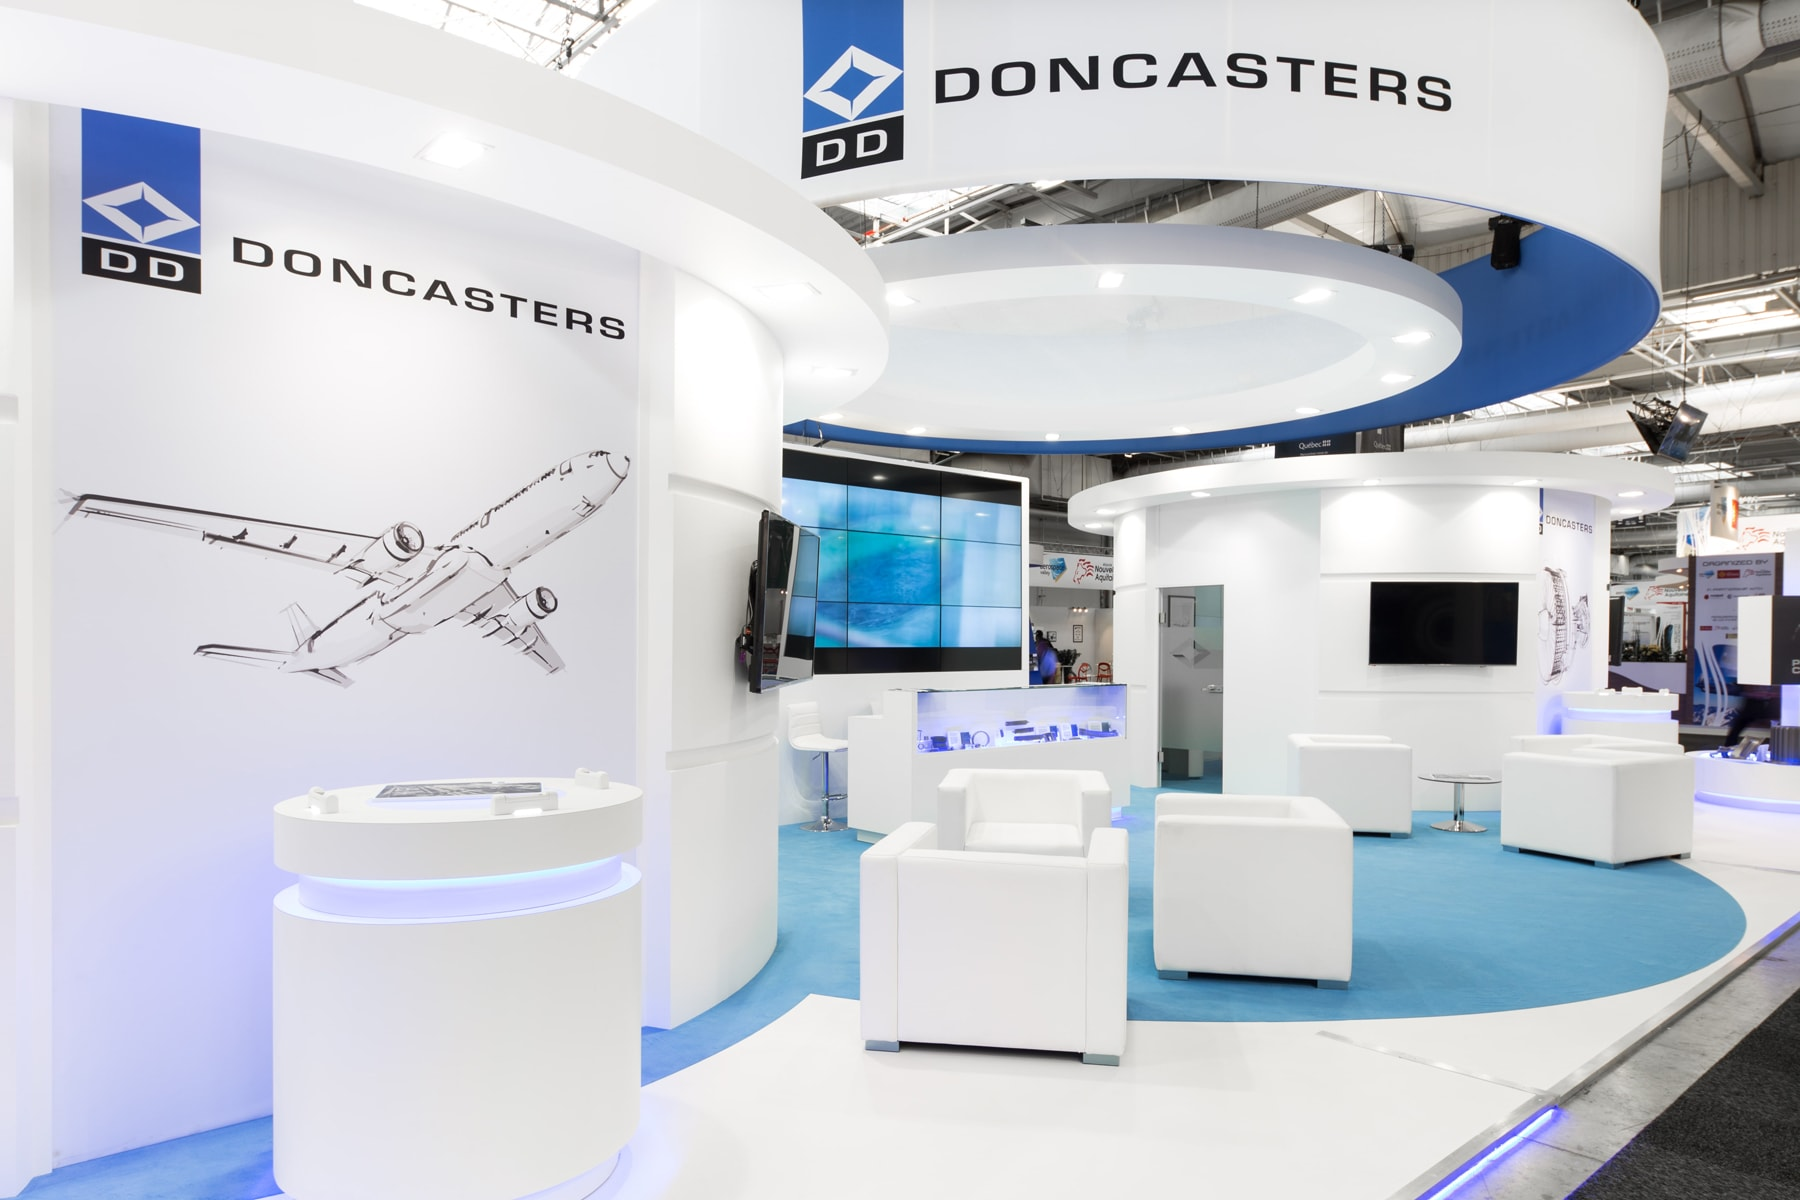 Doncasters Group